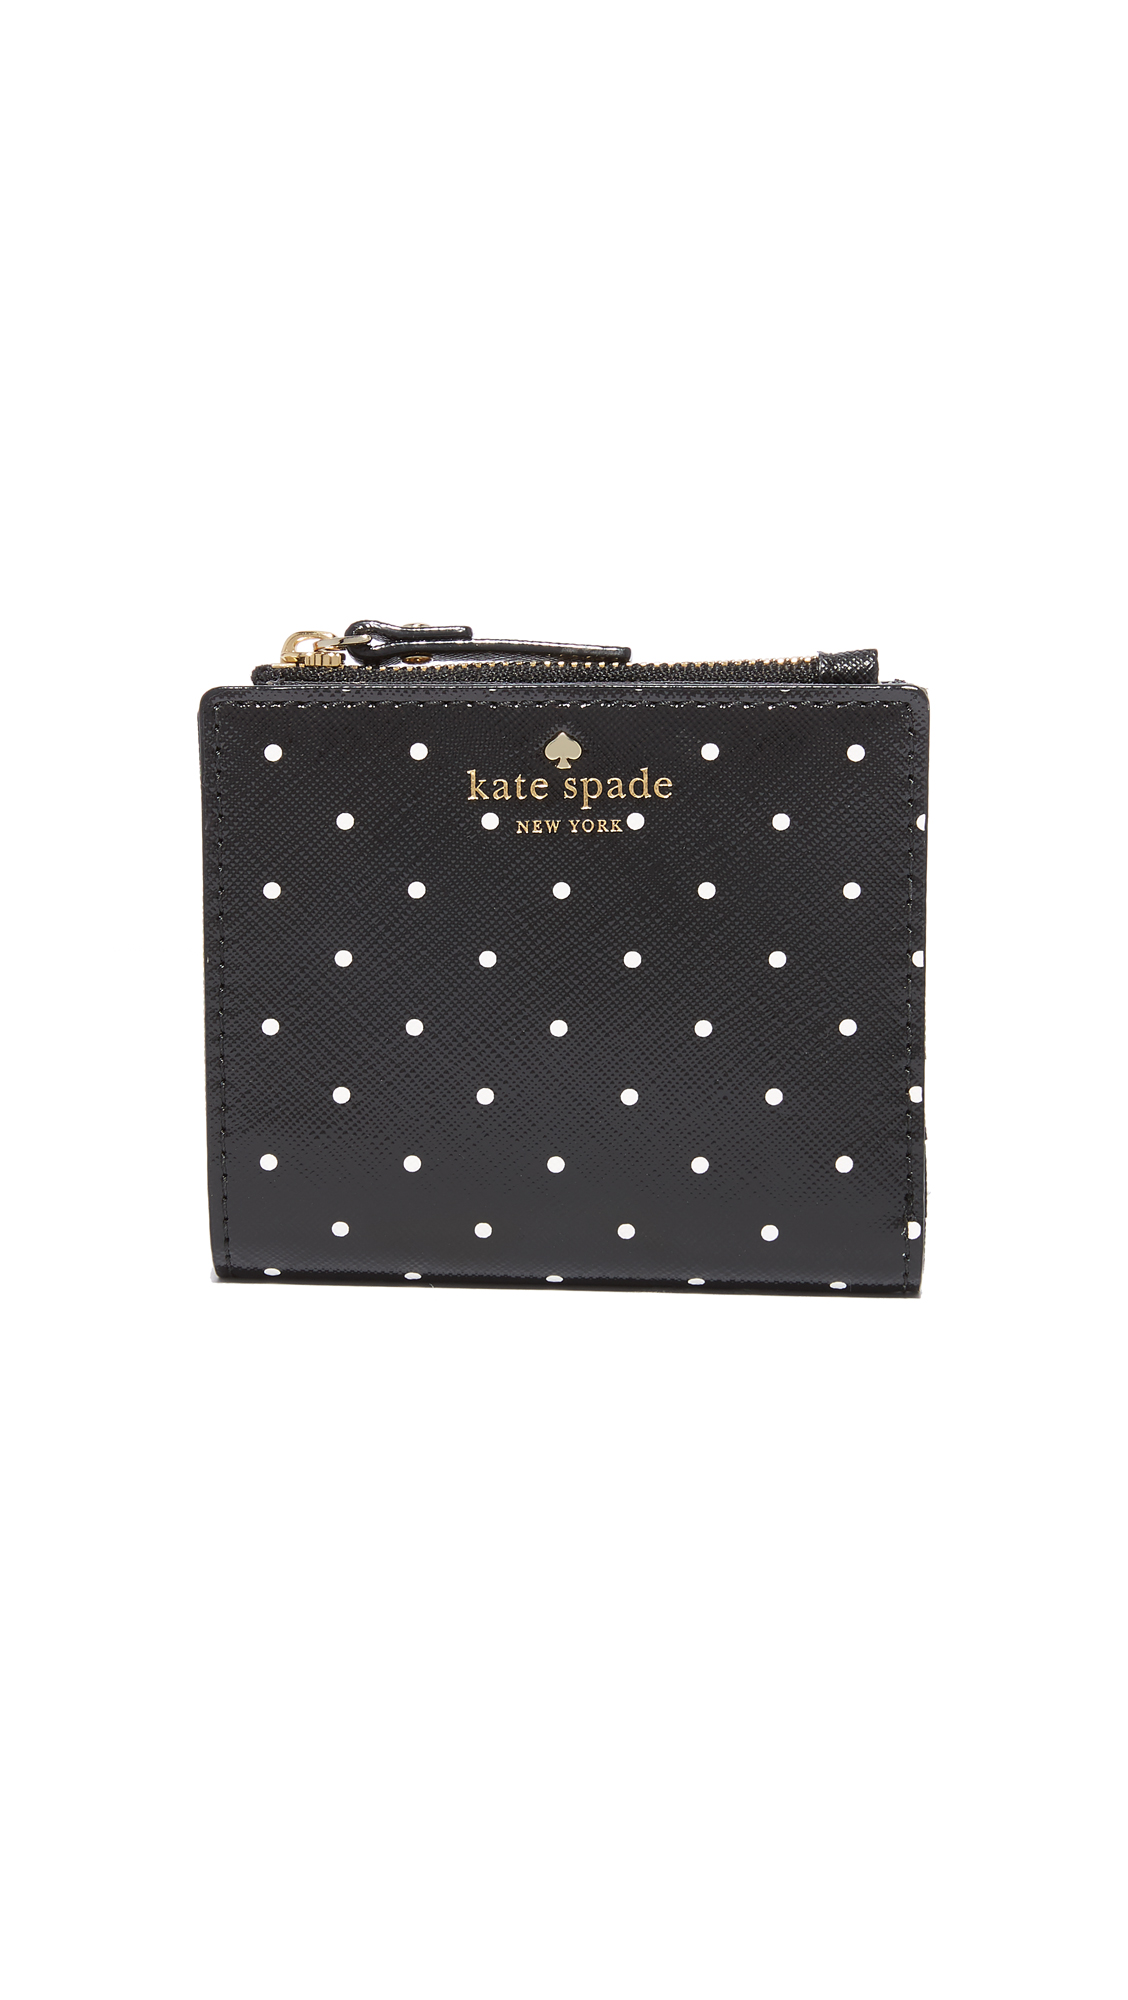 Kate Spade New York Brooks Drive Adalyn Wallet - Black/Cream